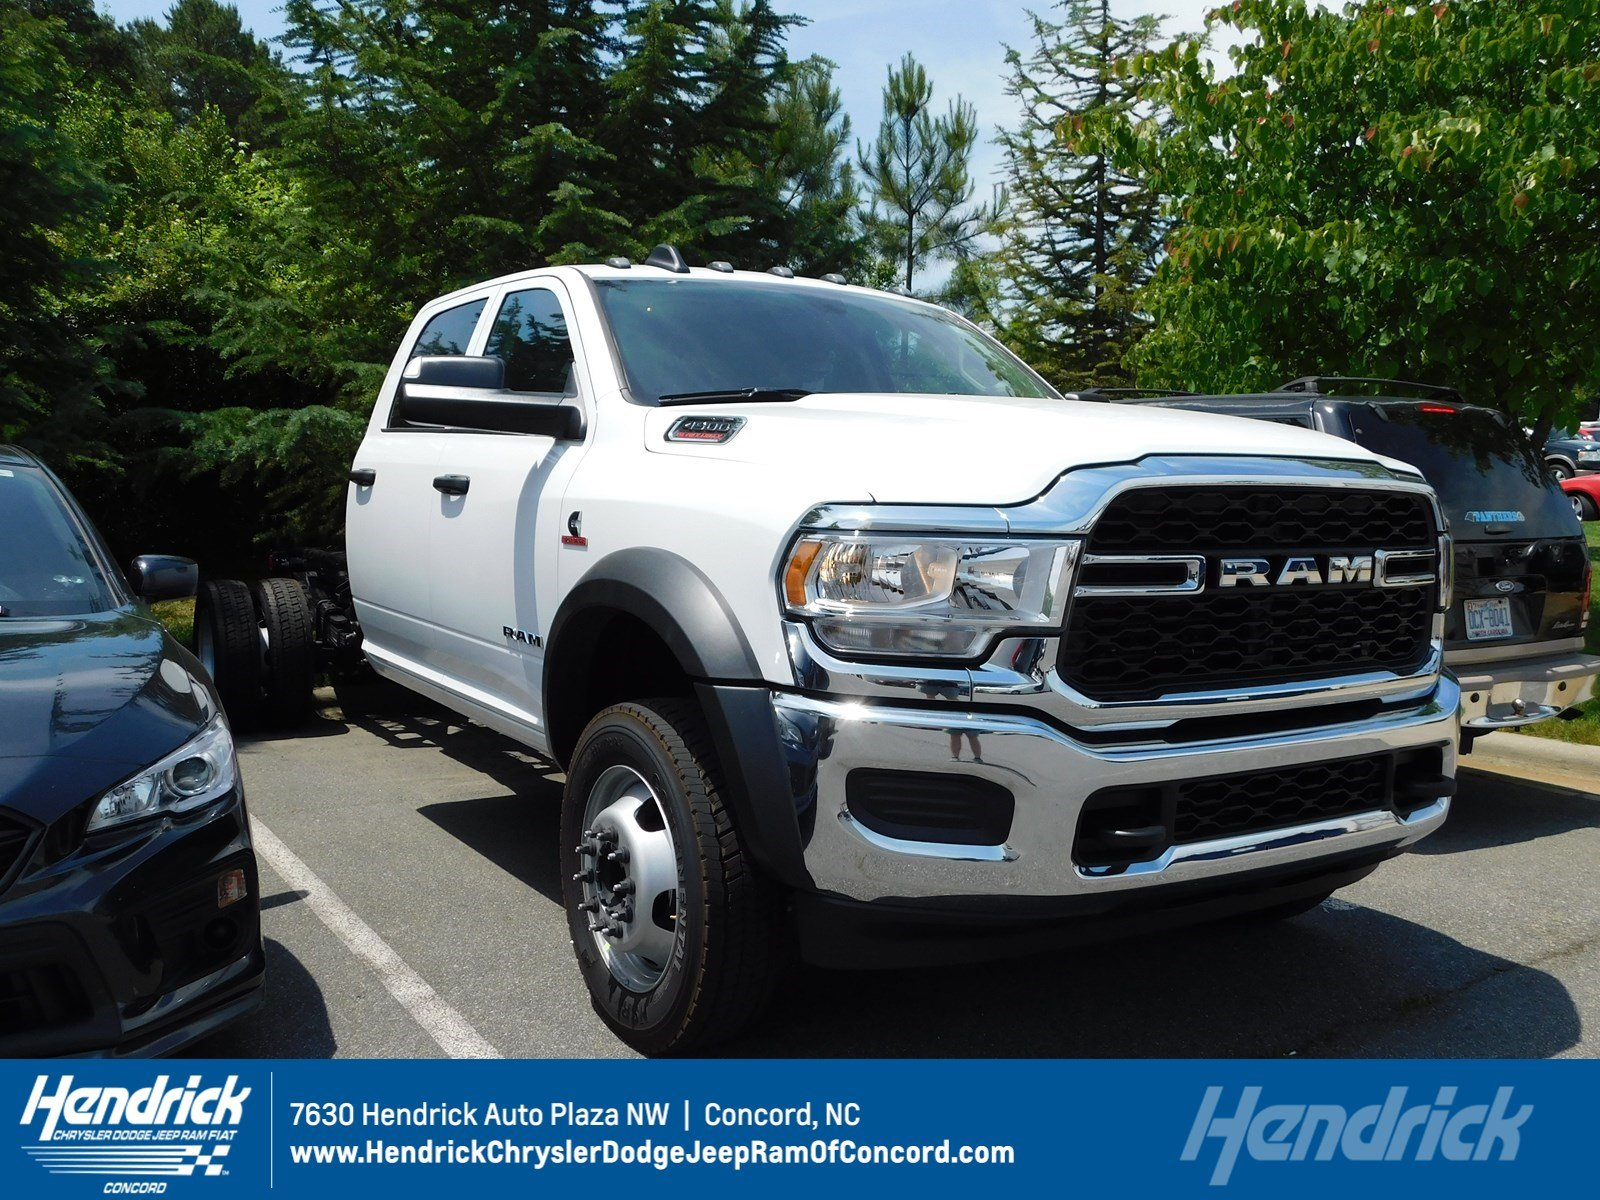 2019 Ram 4500 Chassis Cab 4500 TRADESMAN CHASSIS CREW CAB 4X2 197.4 WB Crew Cab